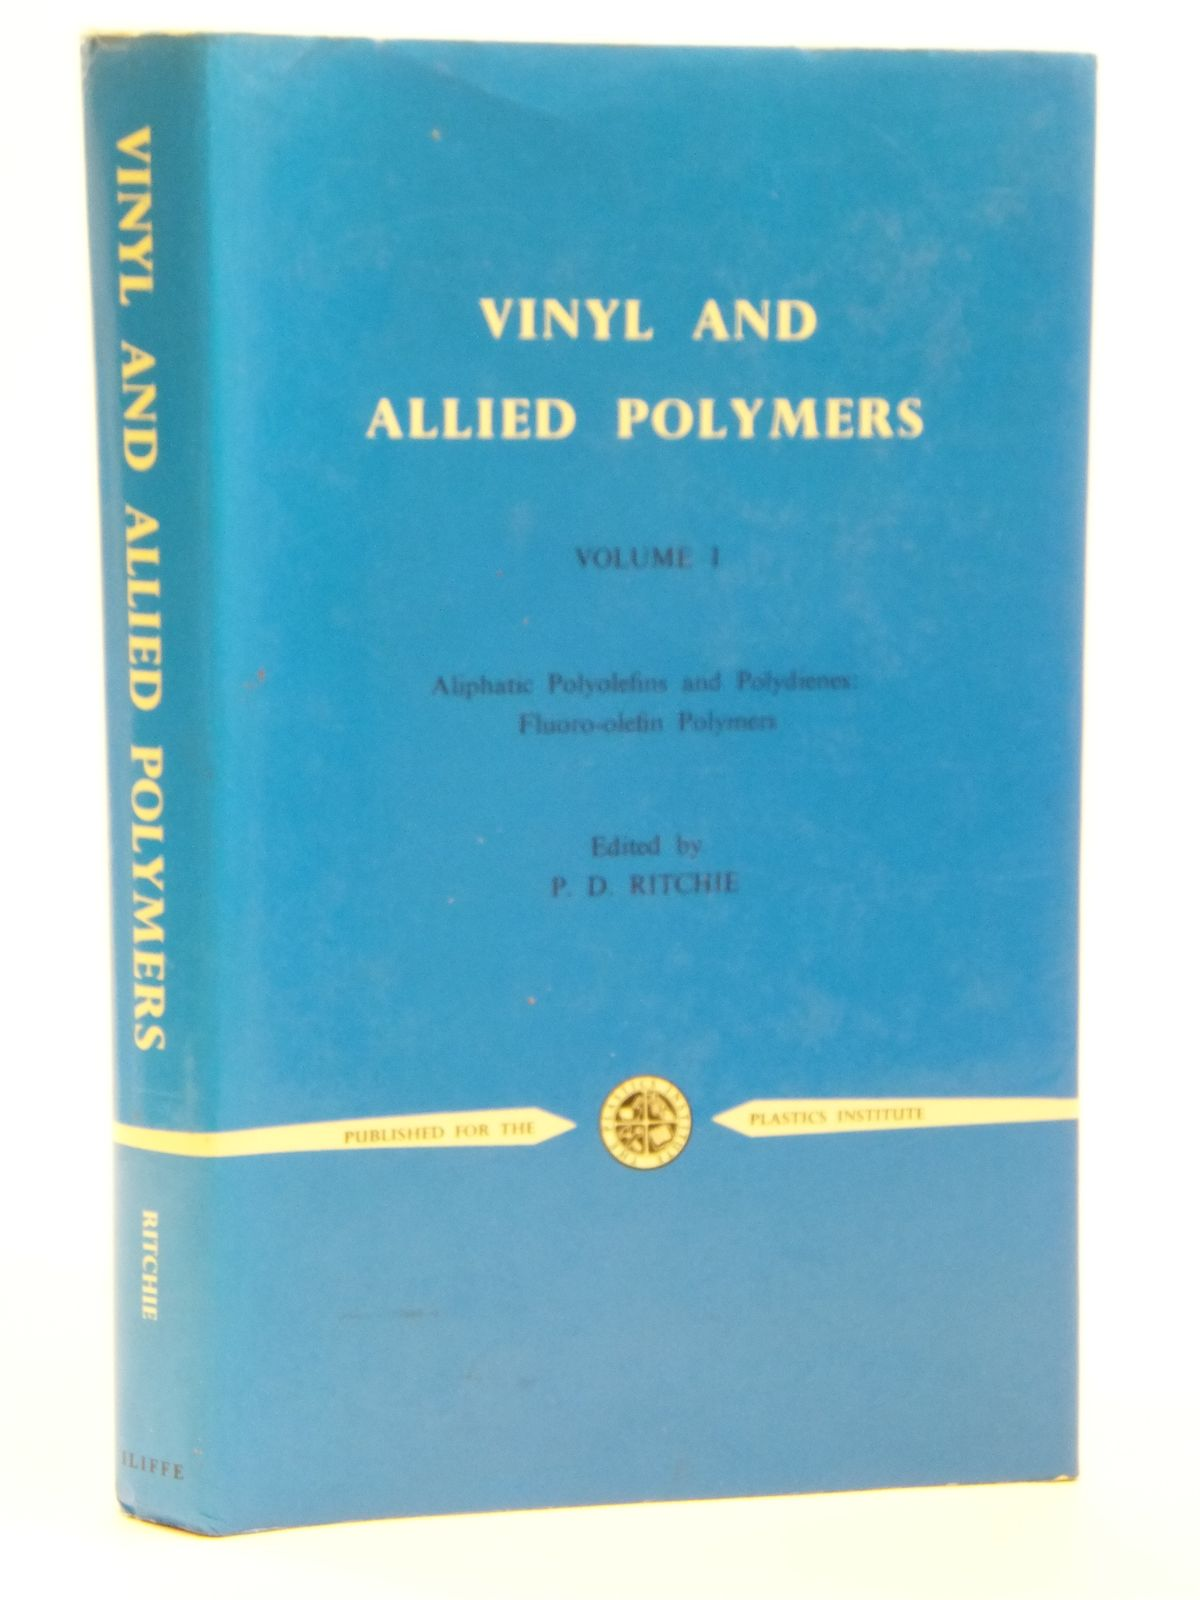 Photo of VINYL AND ALLIED POLYMERS VOLUME I written by Ritchie, P.D. published by Iliffe Books Ltd. (STOCK CODE: 2121106)  for sale by Stella & Rose's Books